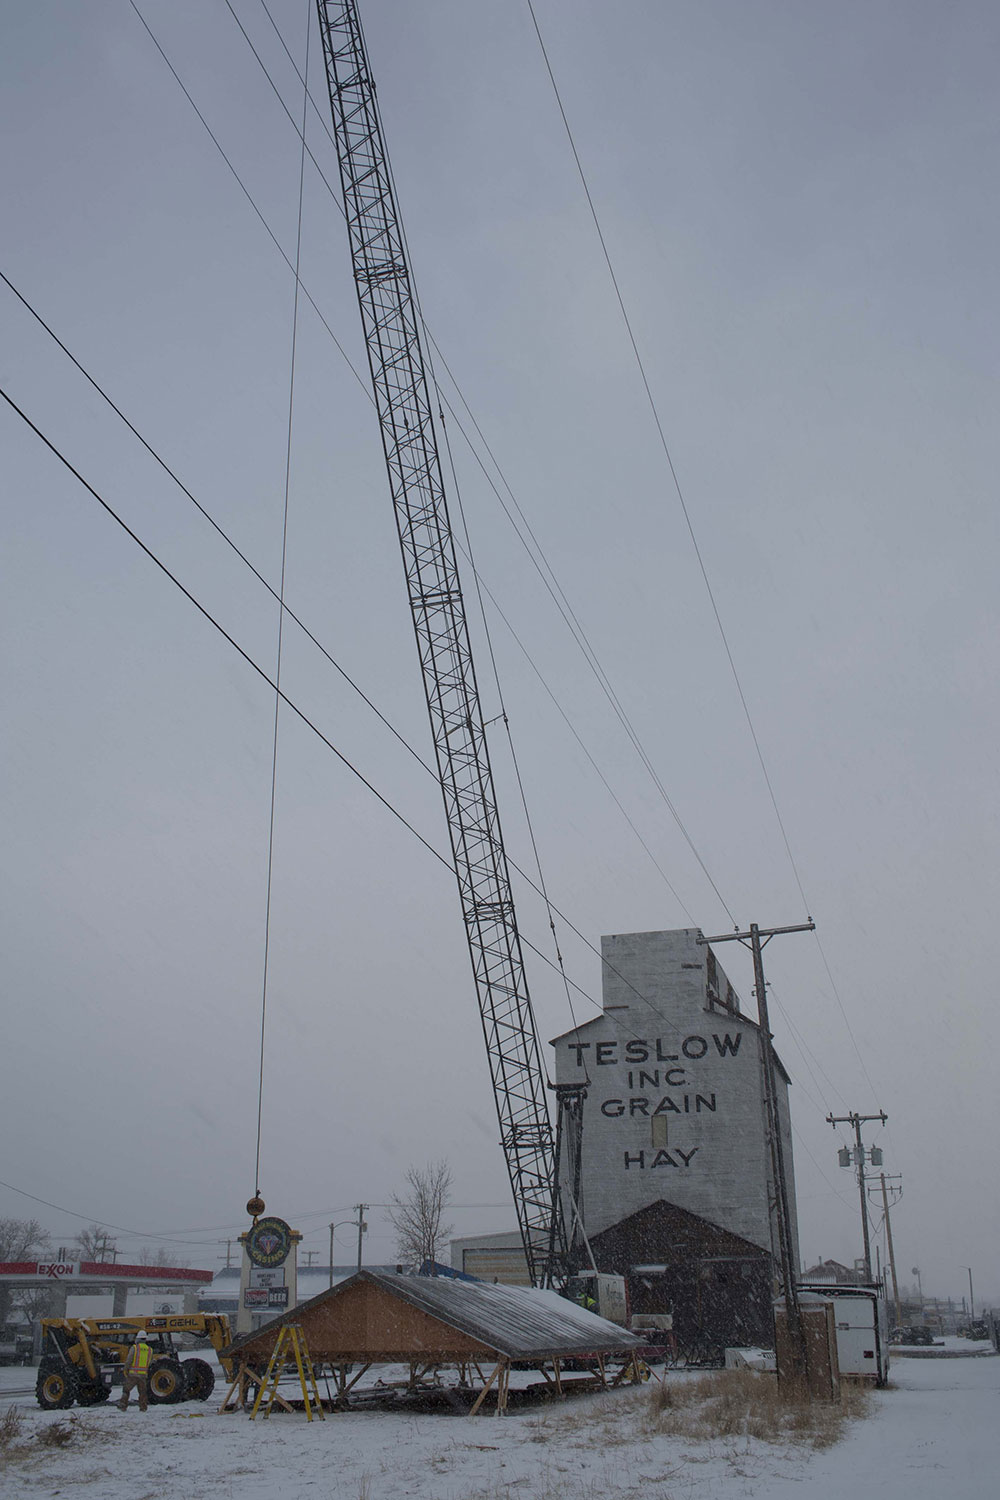 Teslow Grain Elevator in Livingston, MT